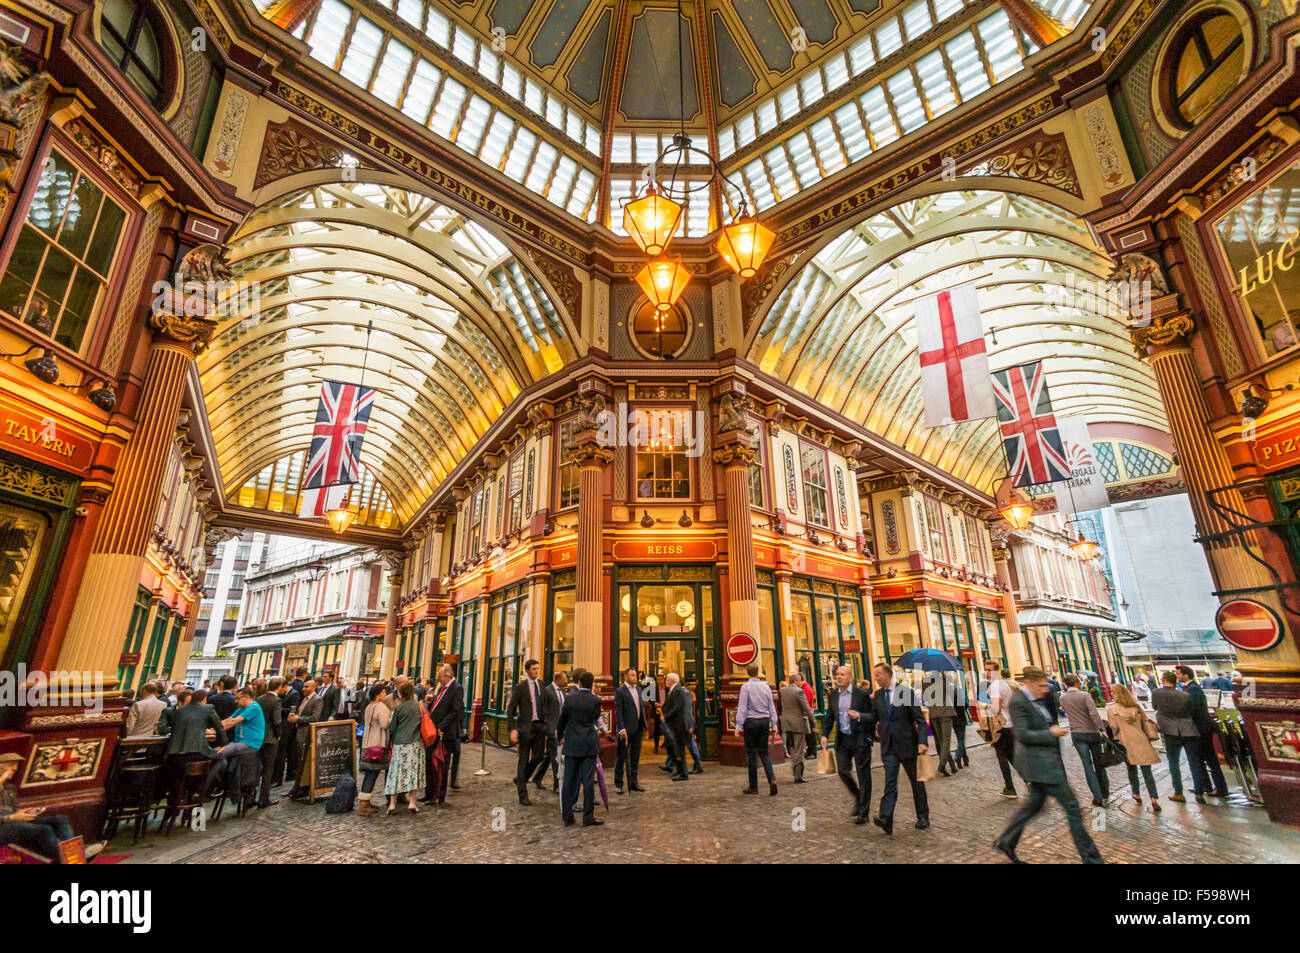 City of London Workers meeting and drinking After Work Leadenhall Market City of  London, England UK GB EU Europe - Stock Image